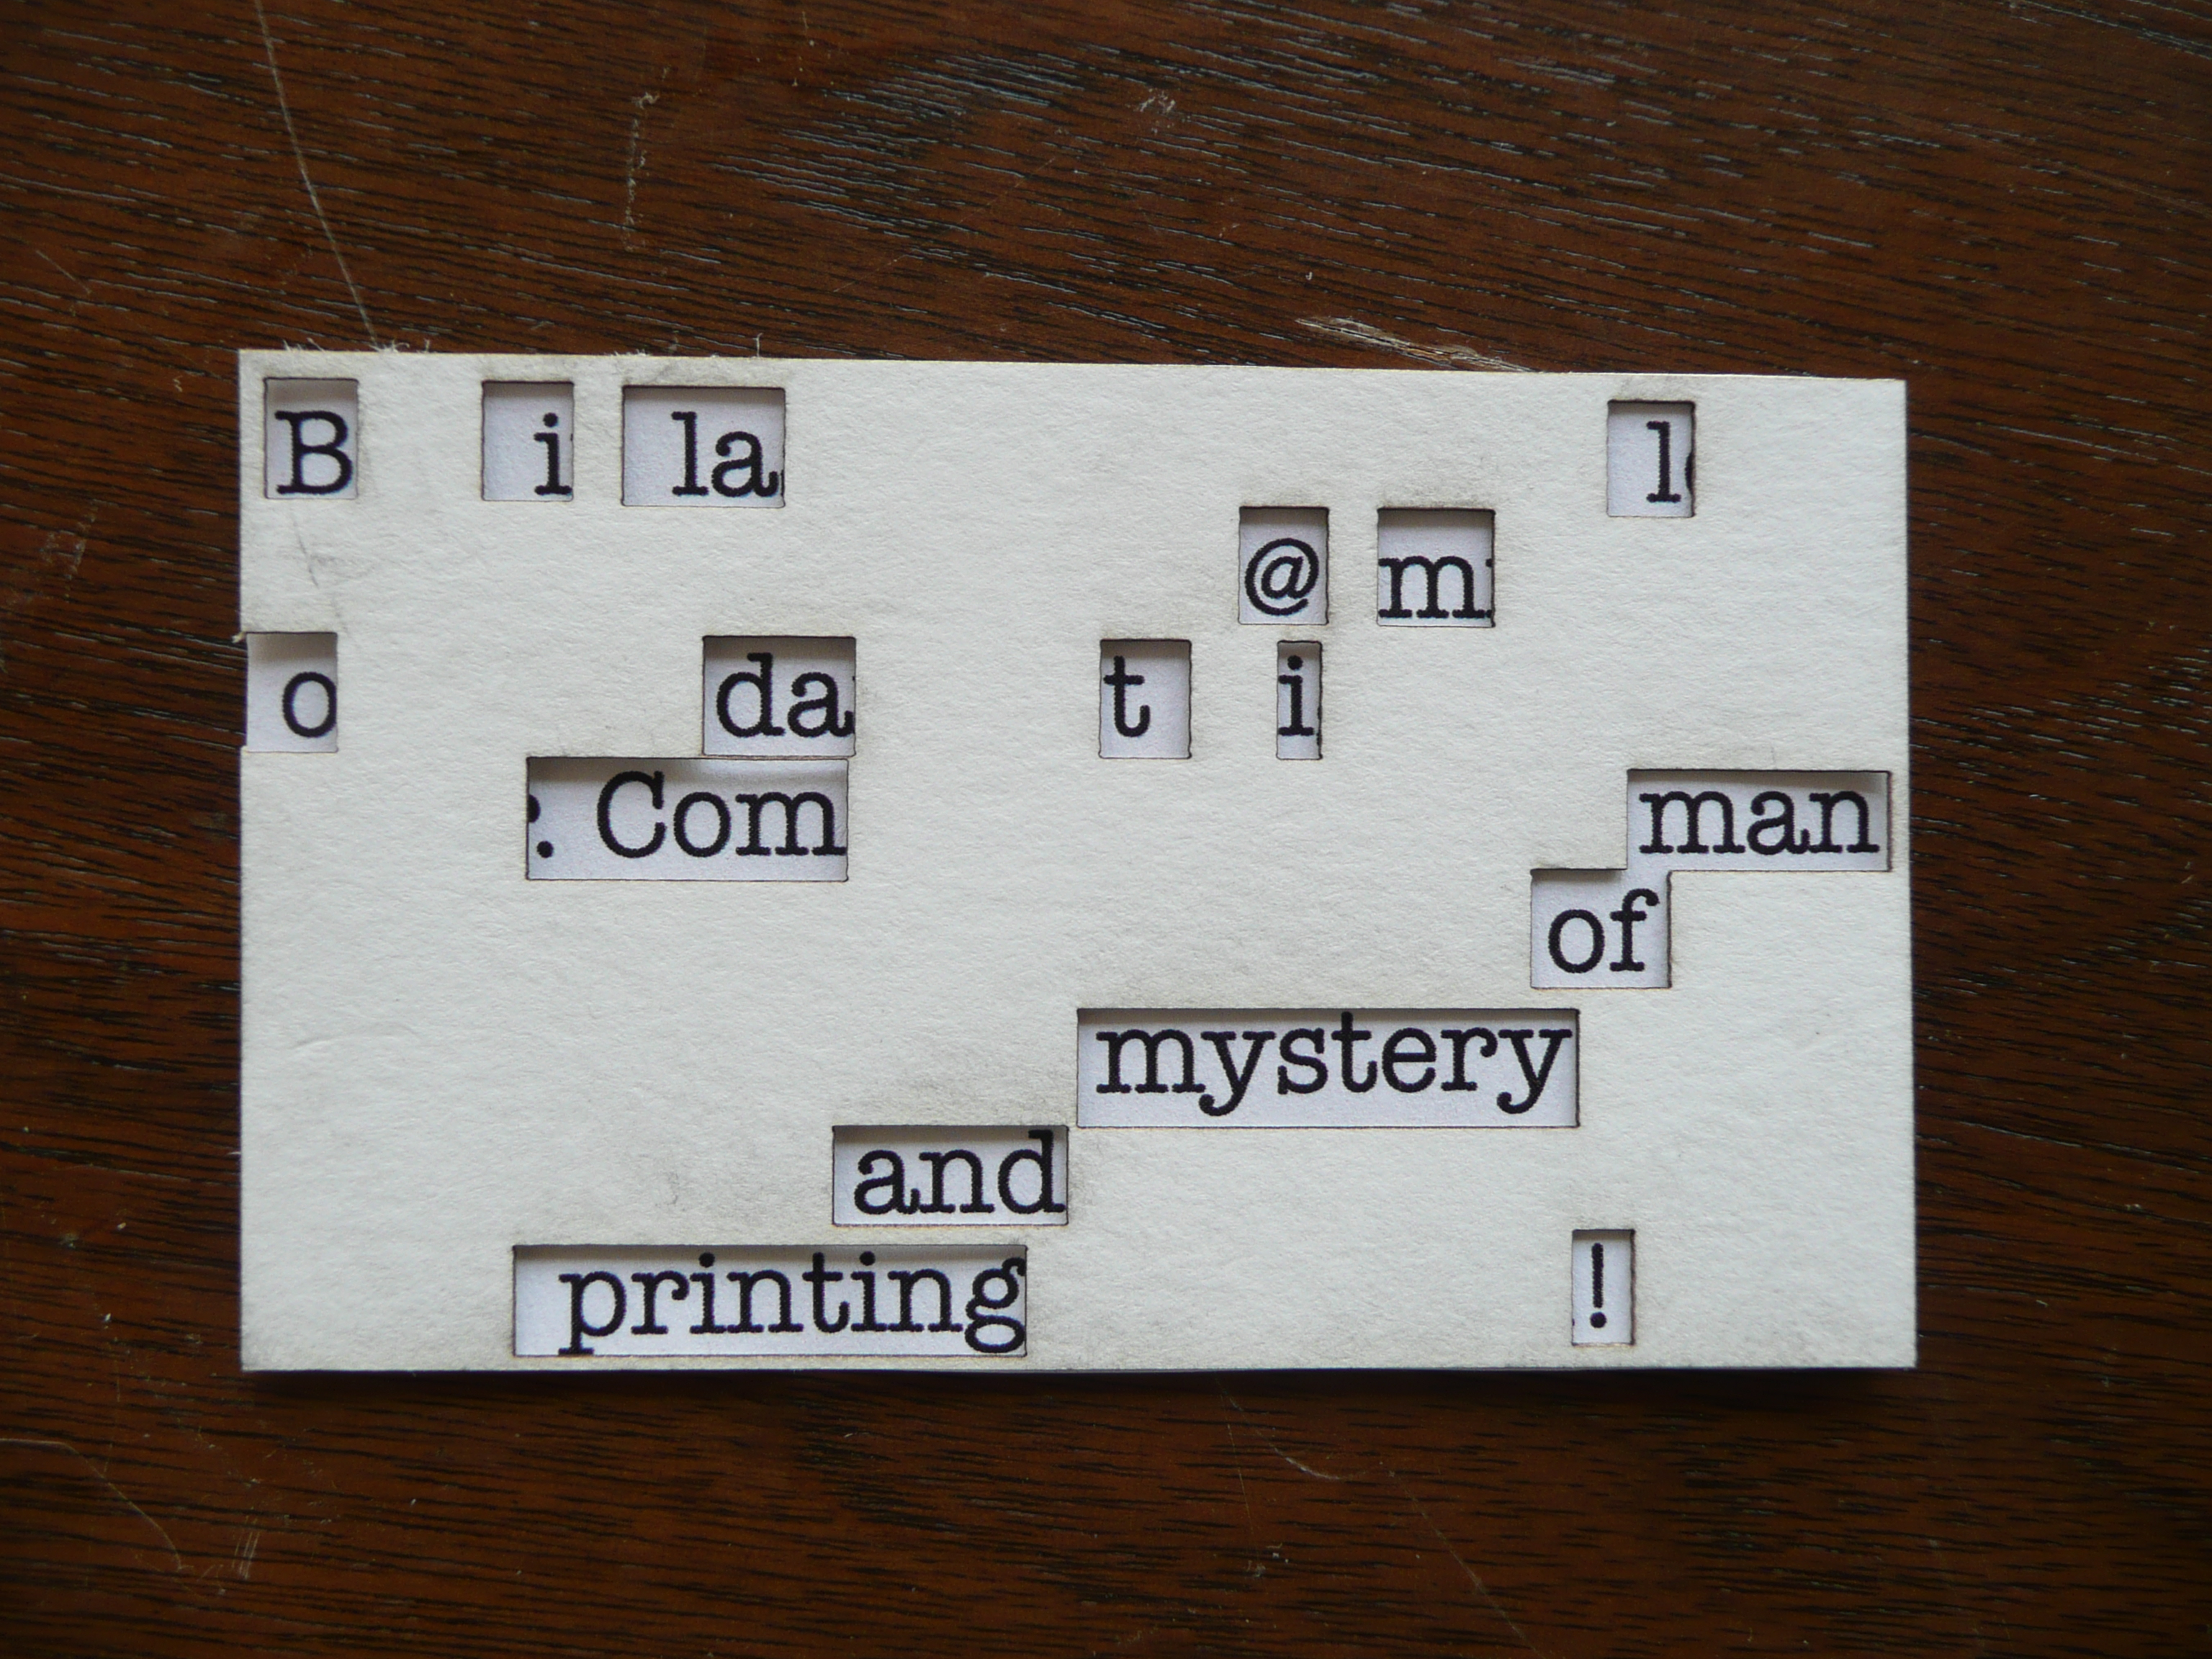 Decoder Business Card - QR Coded Secret Message